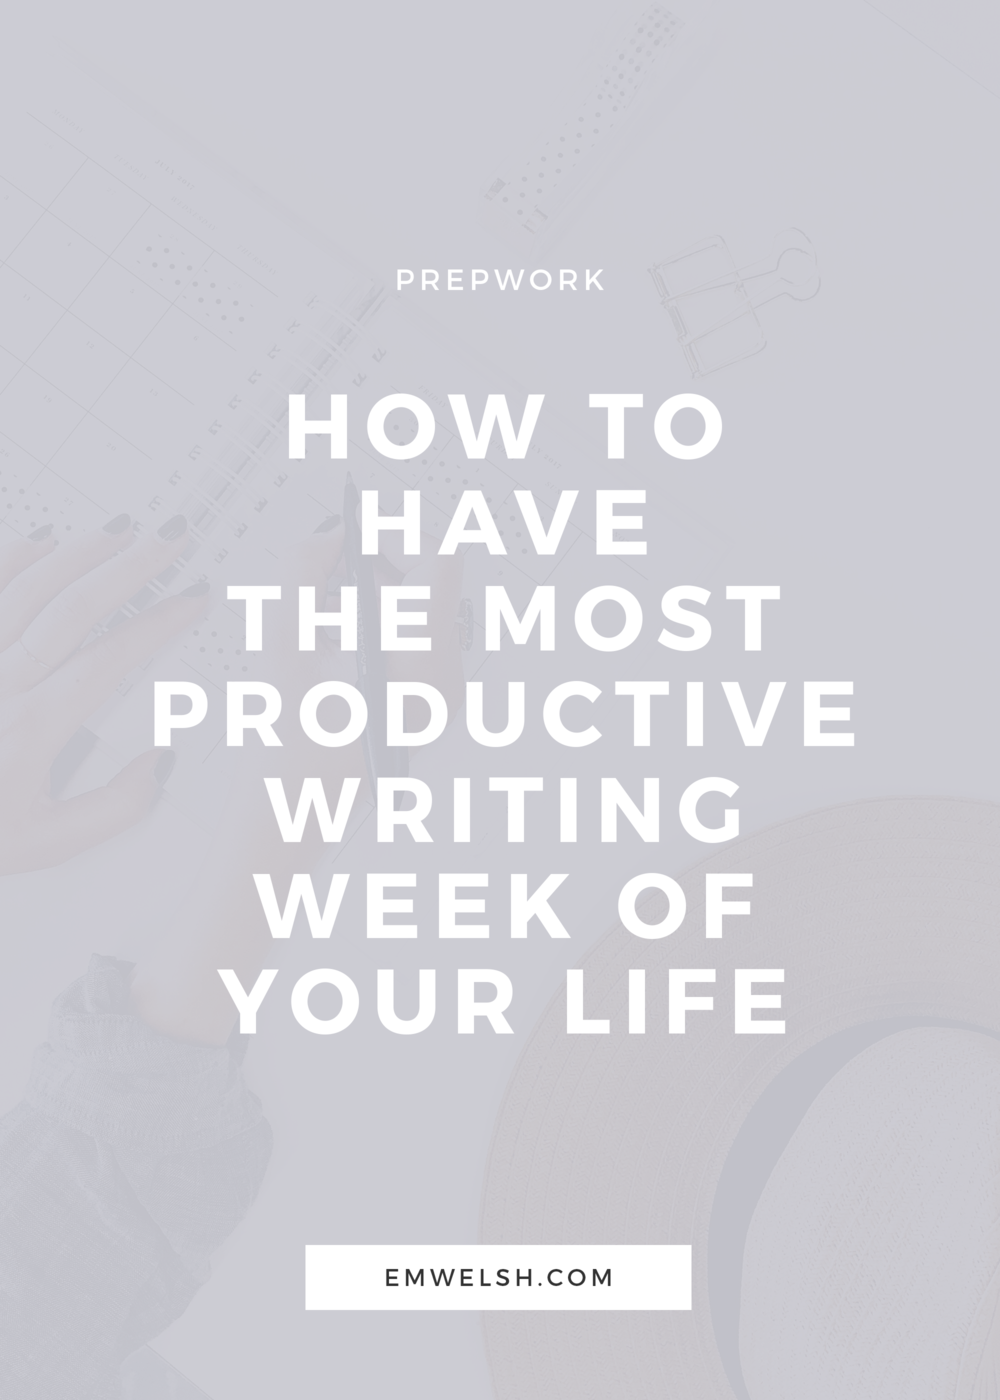 Have A Productive Week Png - How to Have the Most Productive Writing Week of Your Life — E.M. Welsh